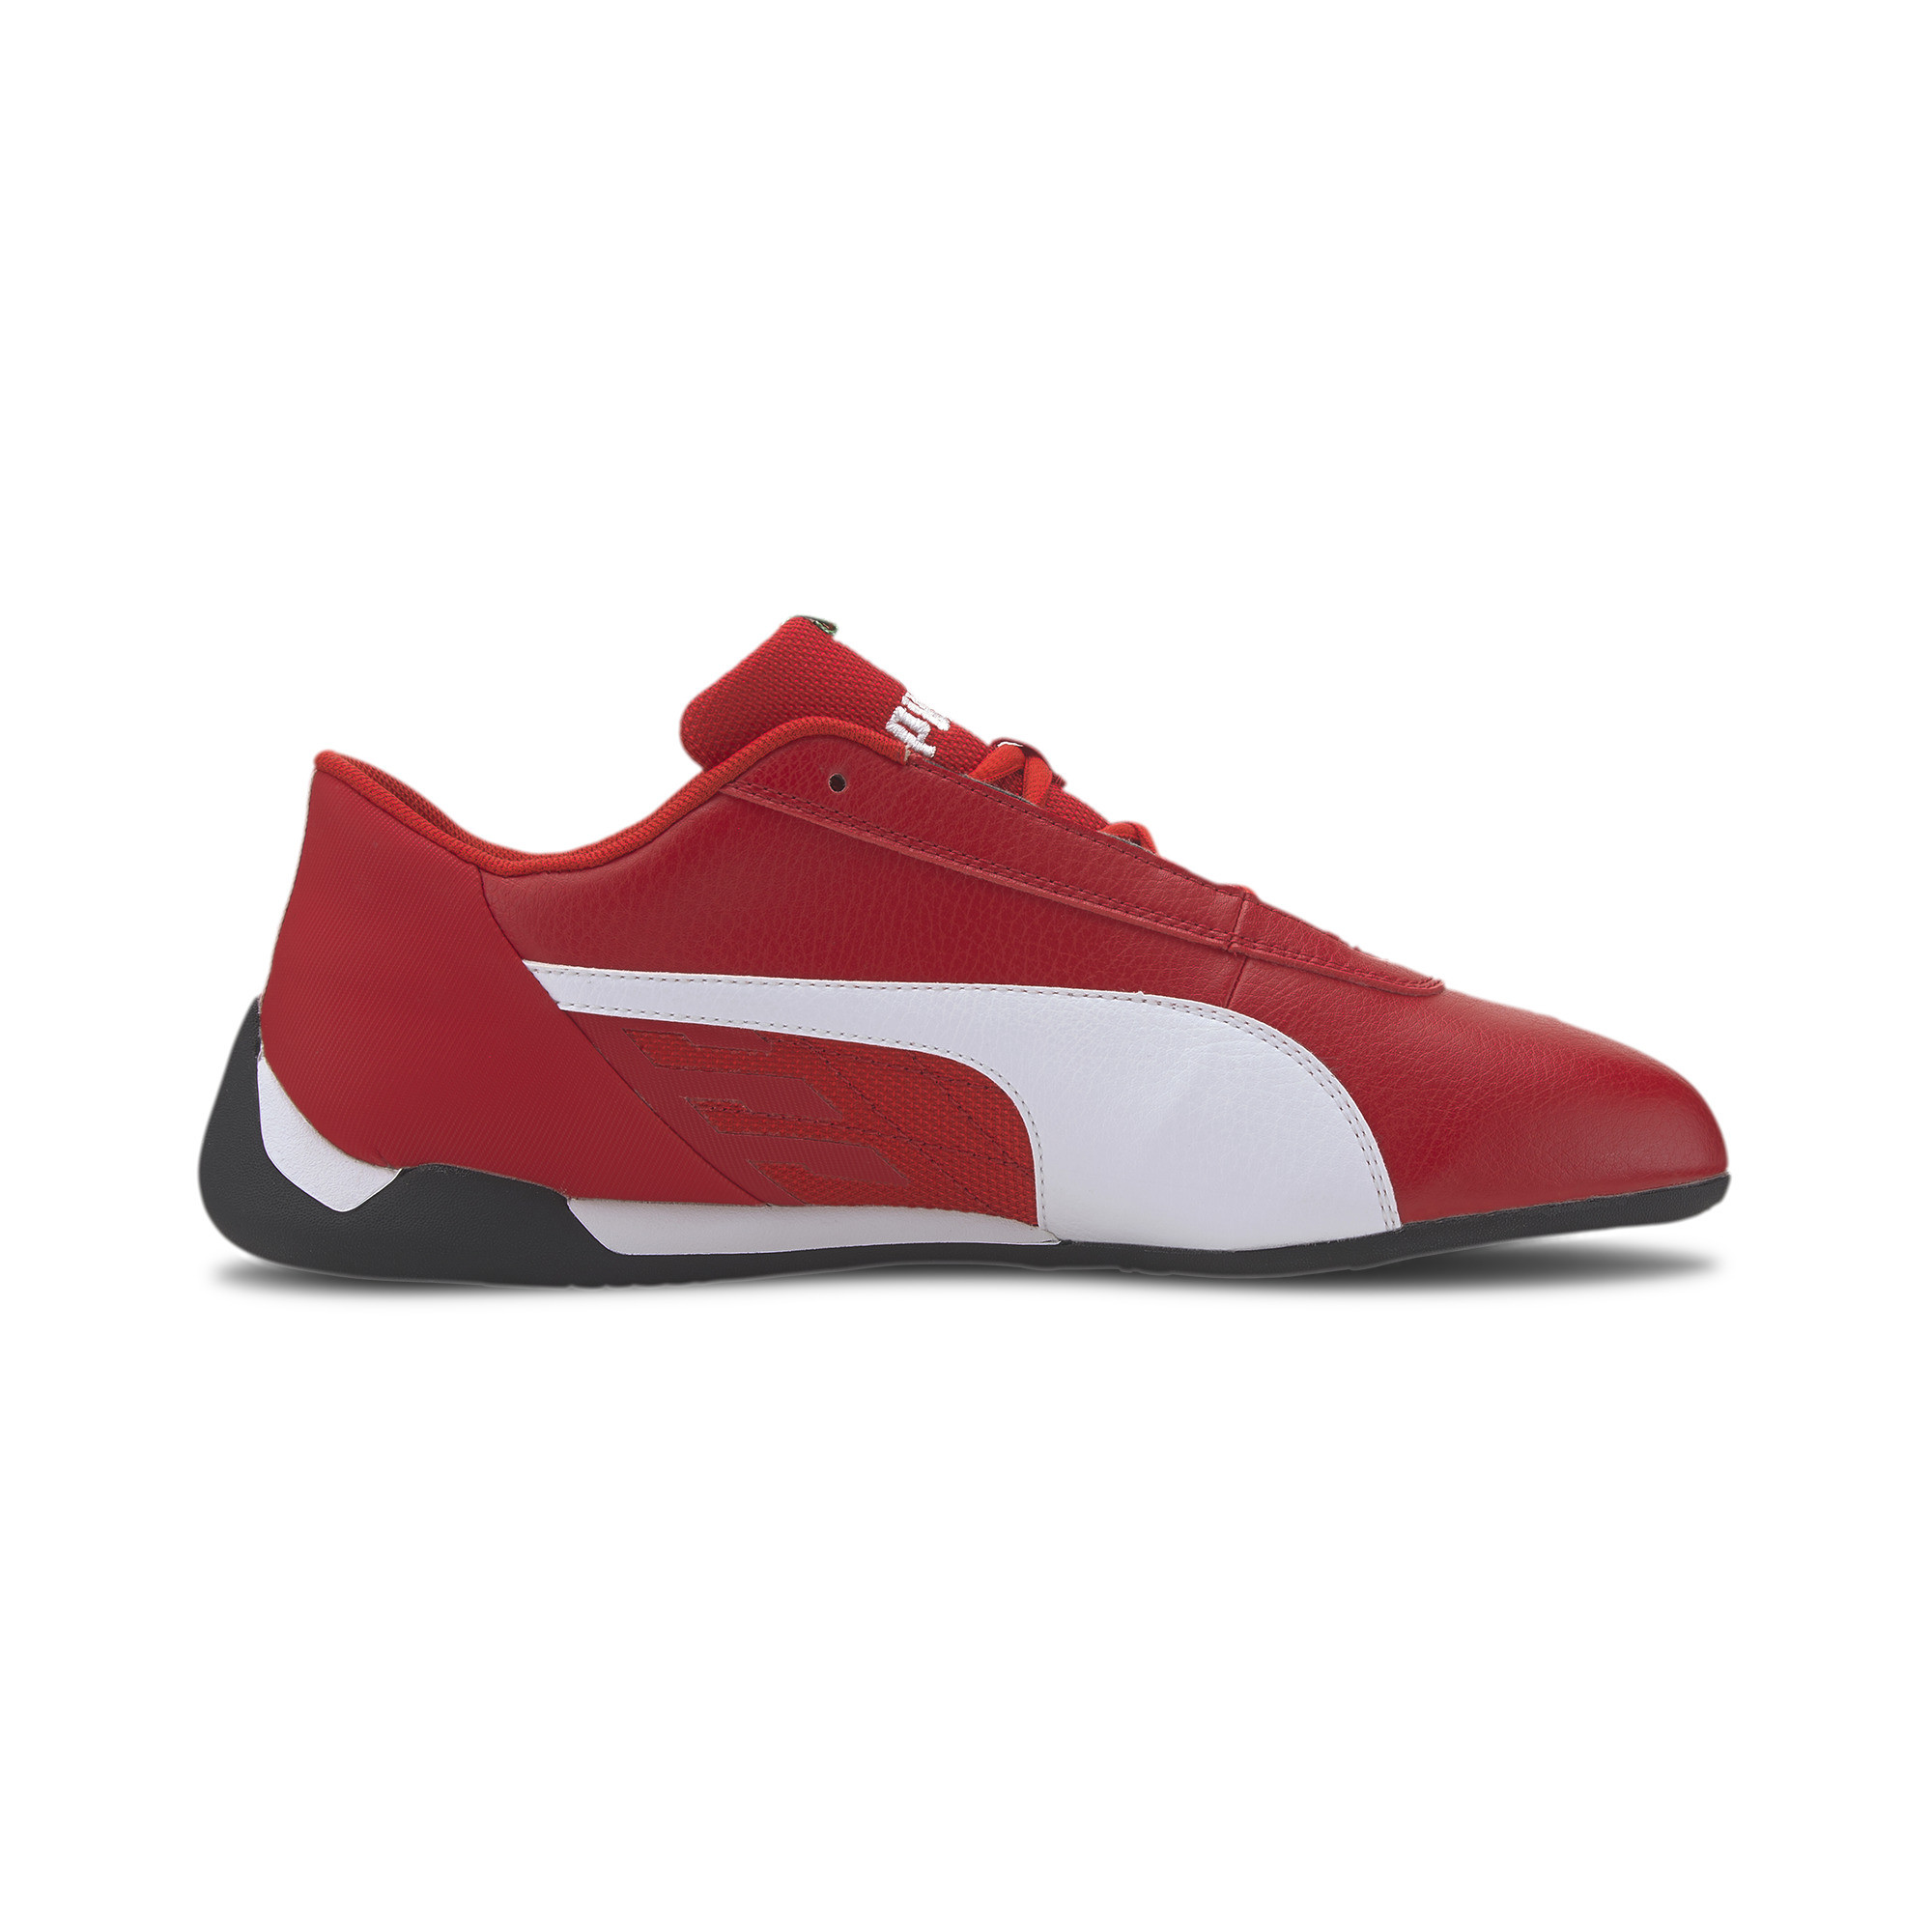 PUMA-Men-039-s-Scuderia-Ferrari-R-Cat-Motorsport-Shoes thumbnail 7